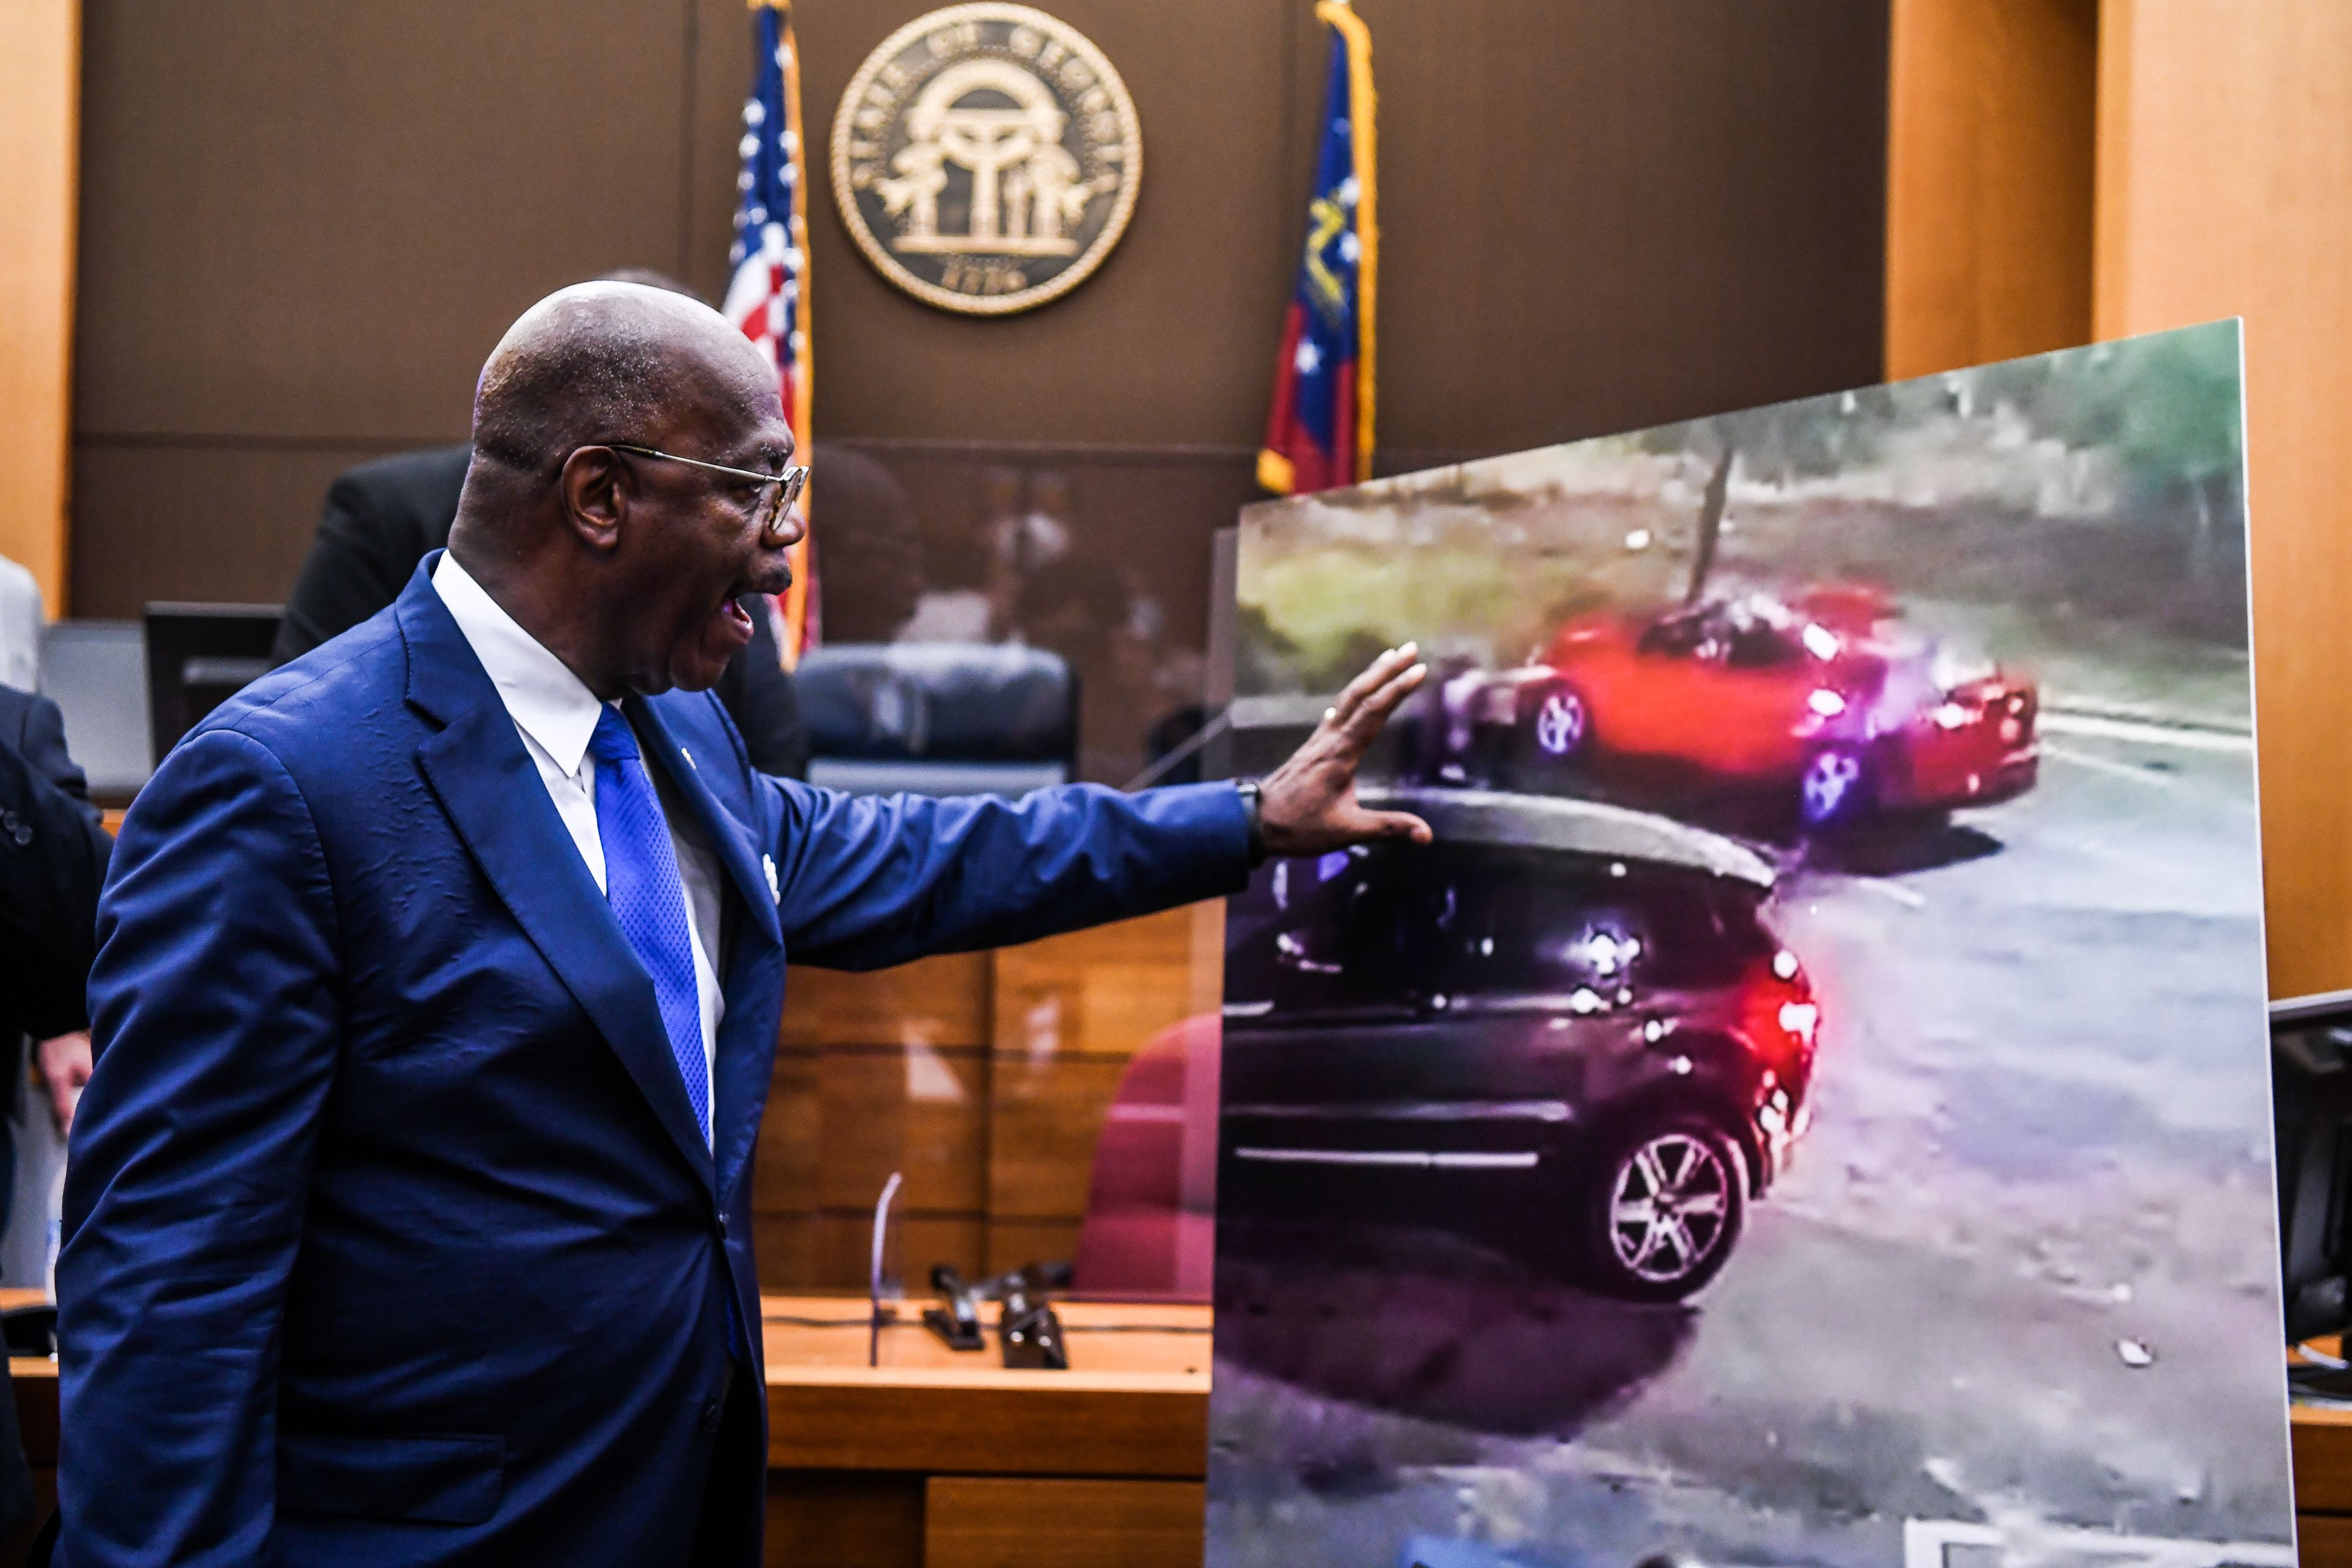 Fulton County District Attorney Paul Howard shows a picture of the incident in a courtroom as he announces 11 charges against former Atlanta Police Officer Garrett Rolfe on June 17, 2020, in Atlanta, Georgia. (Photo by CHANDAN KHANNA/AFP via Getty Images)